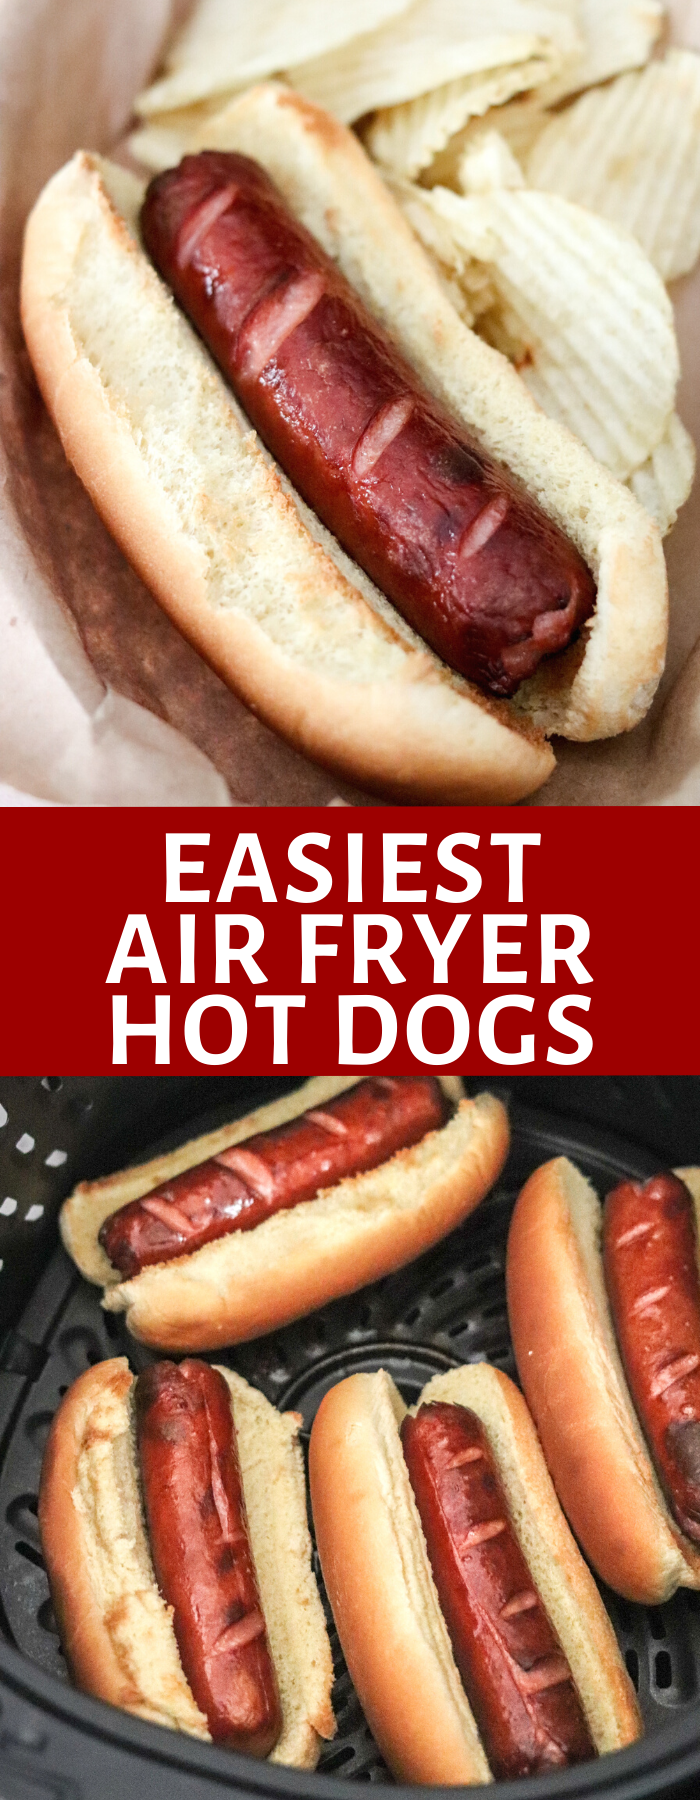 Cooking hot dogs has never been easier than in the Air